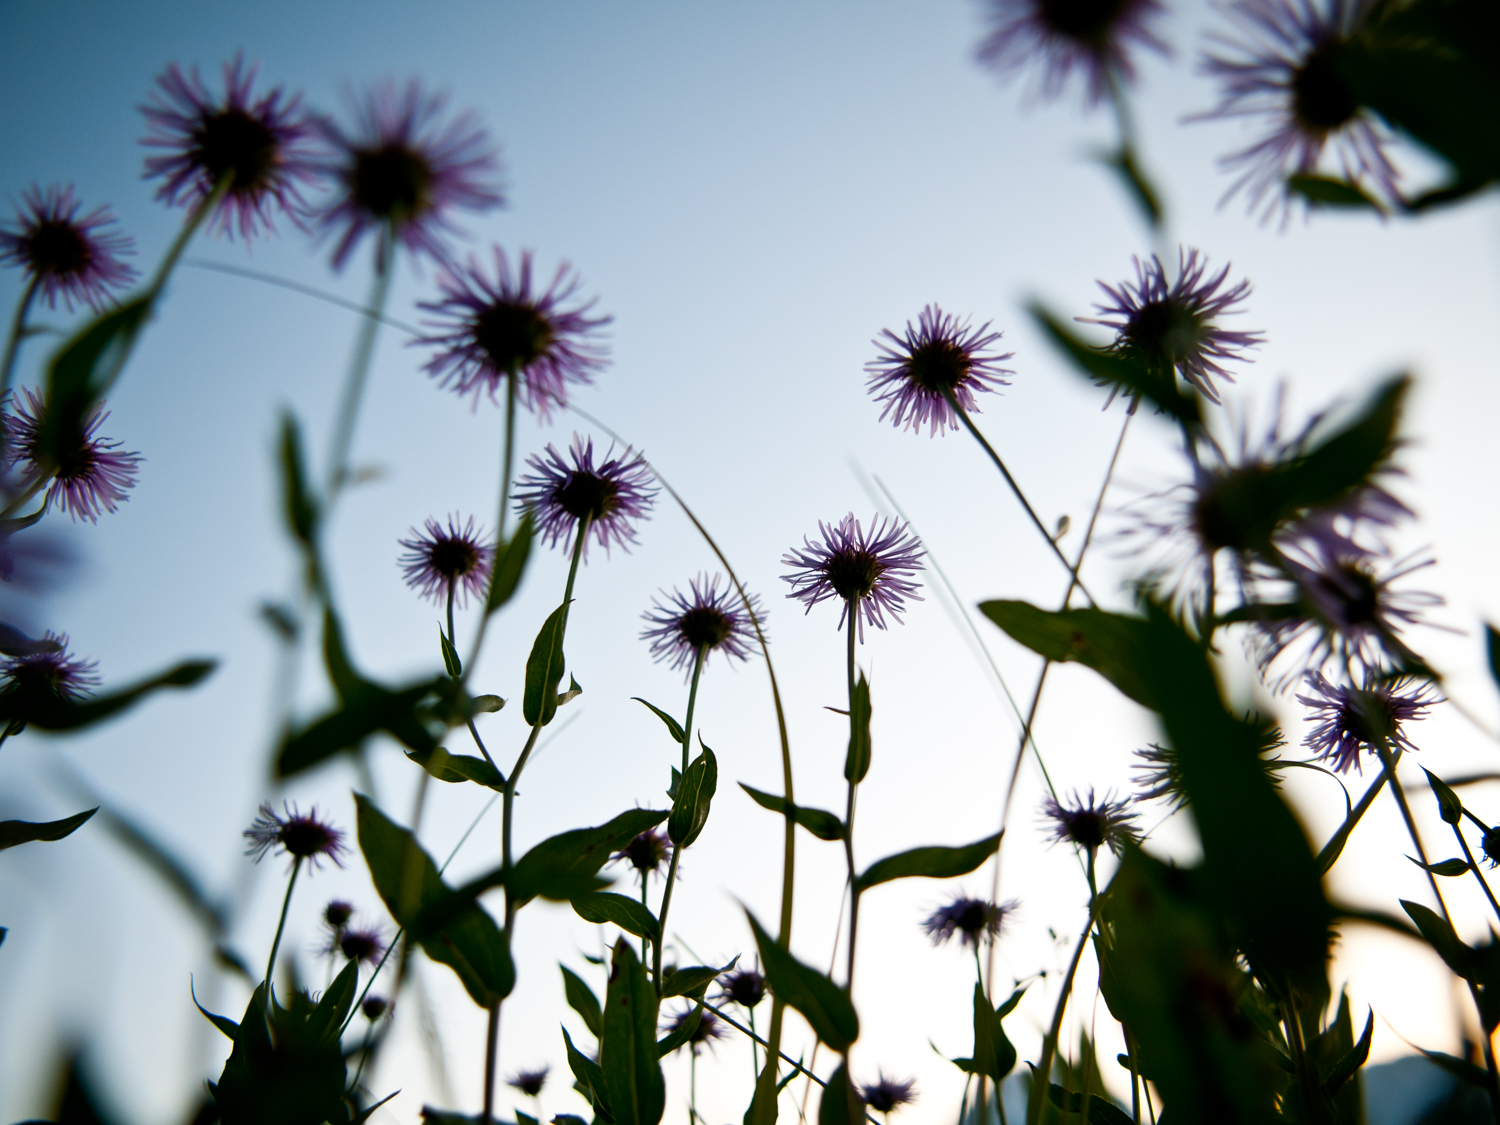 Flowers - Outdoors